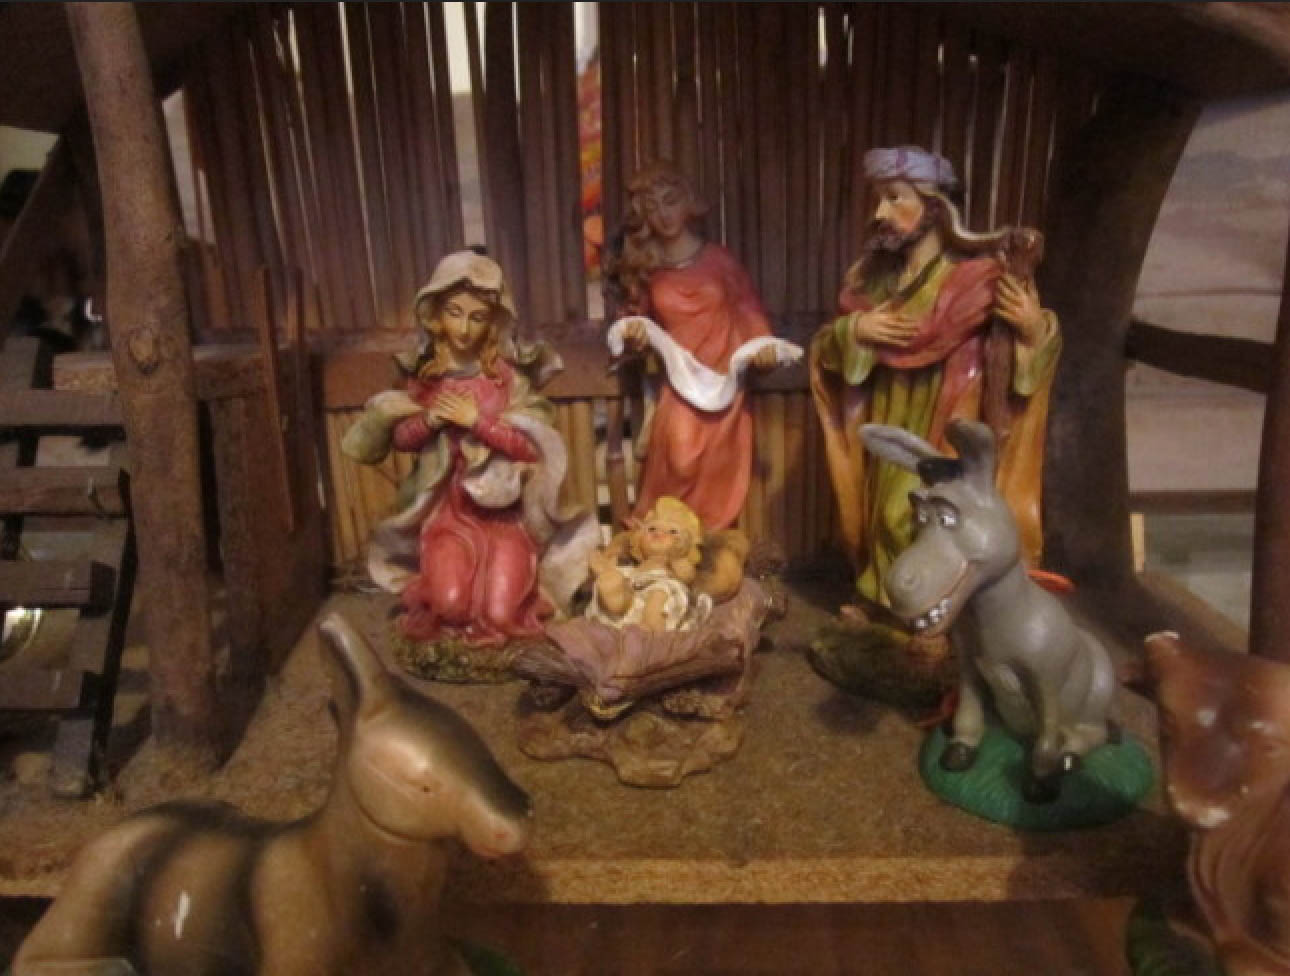 Inappropriate nativity scene #7